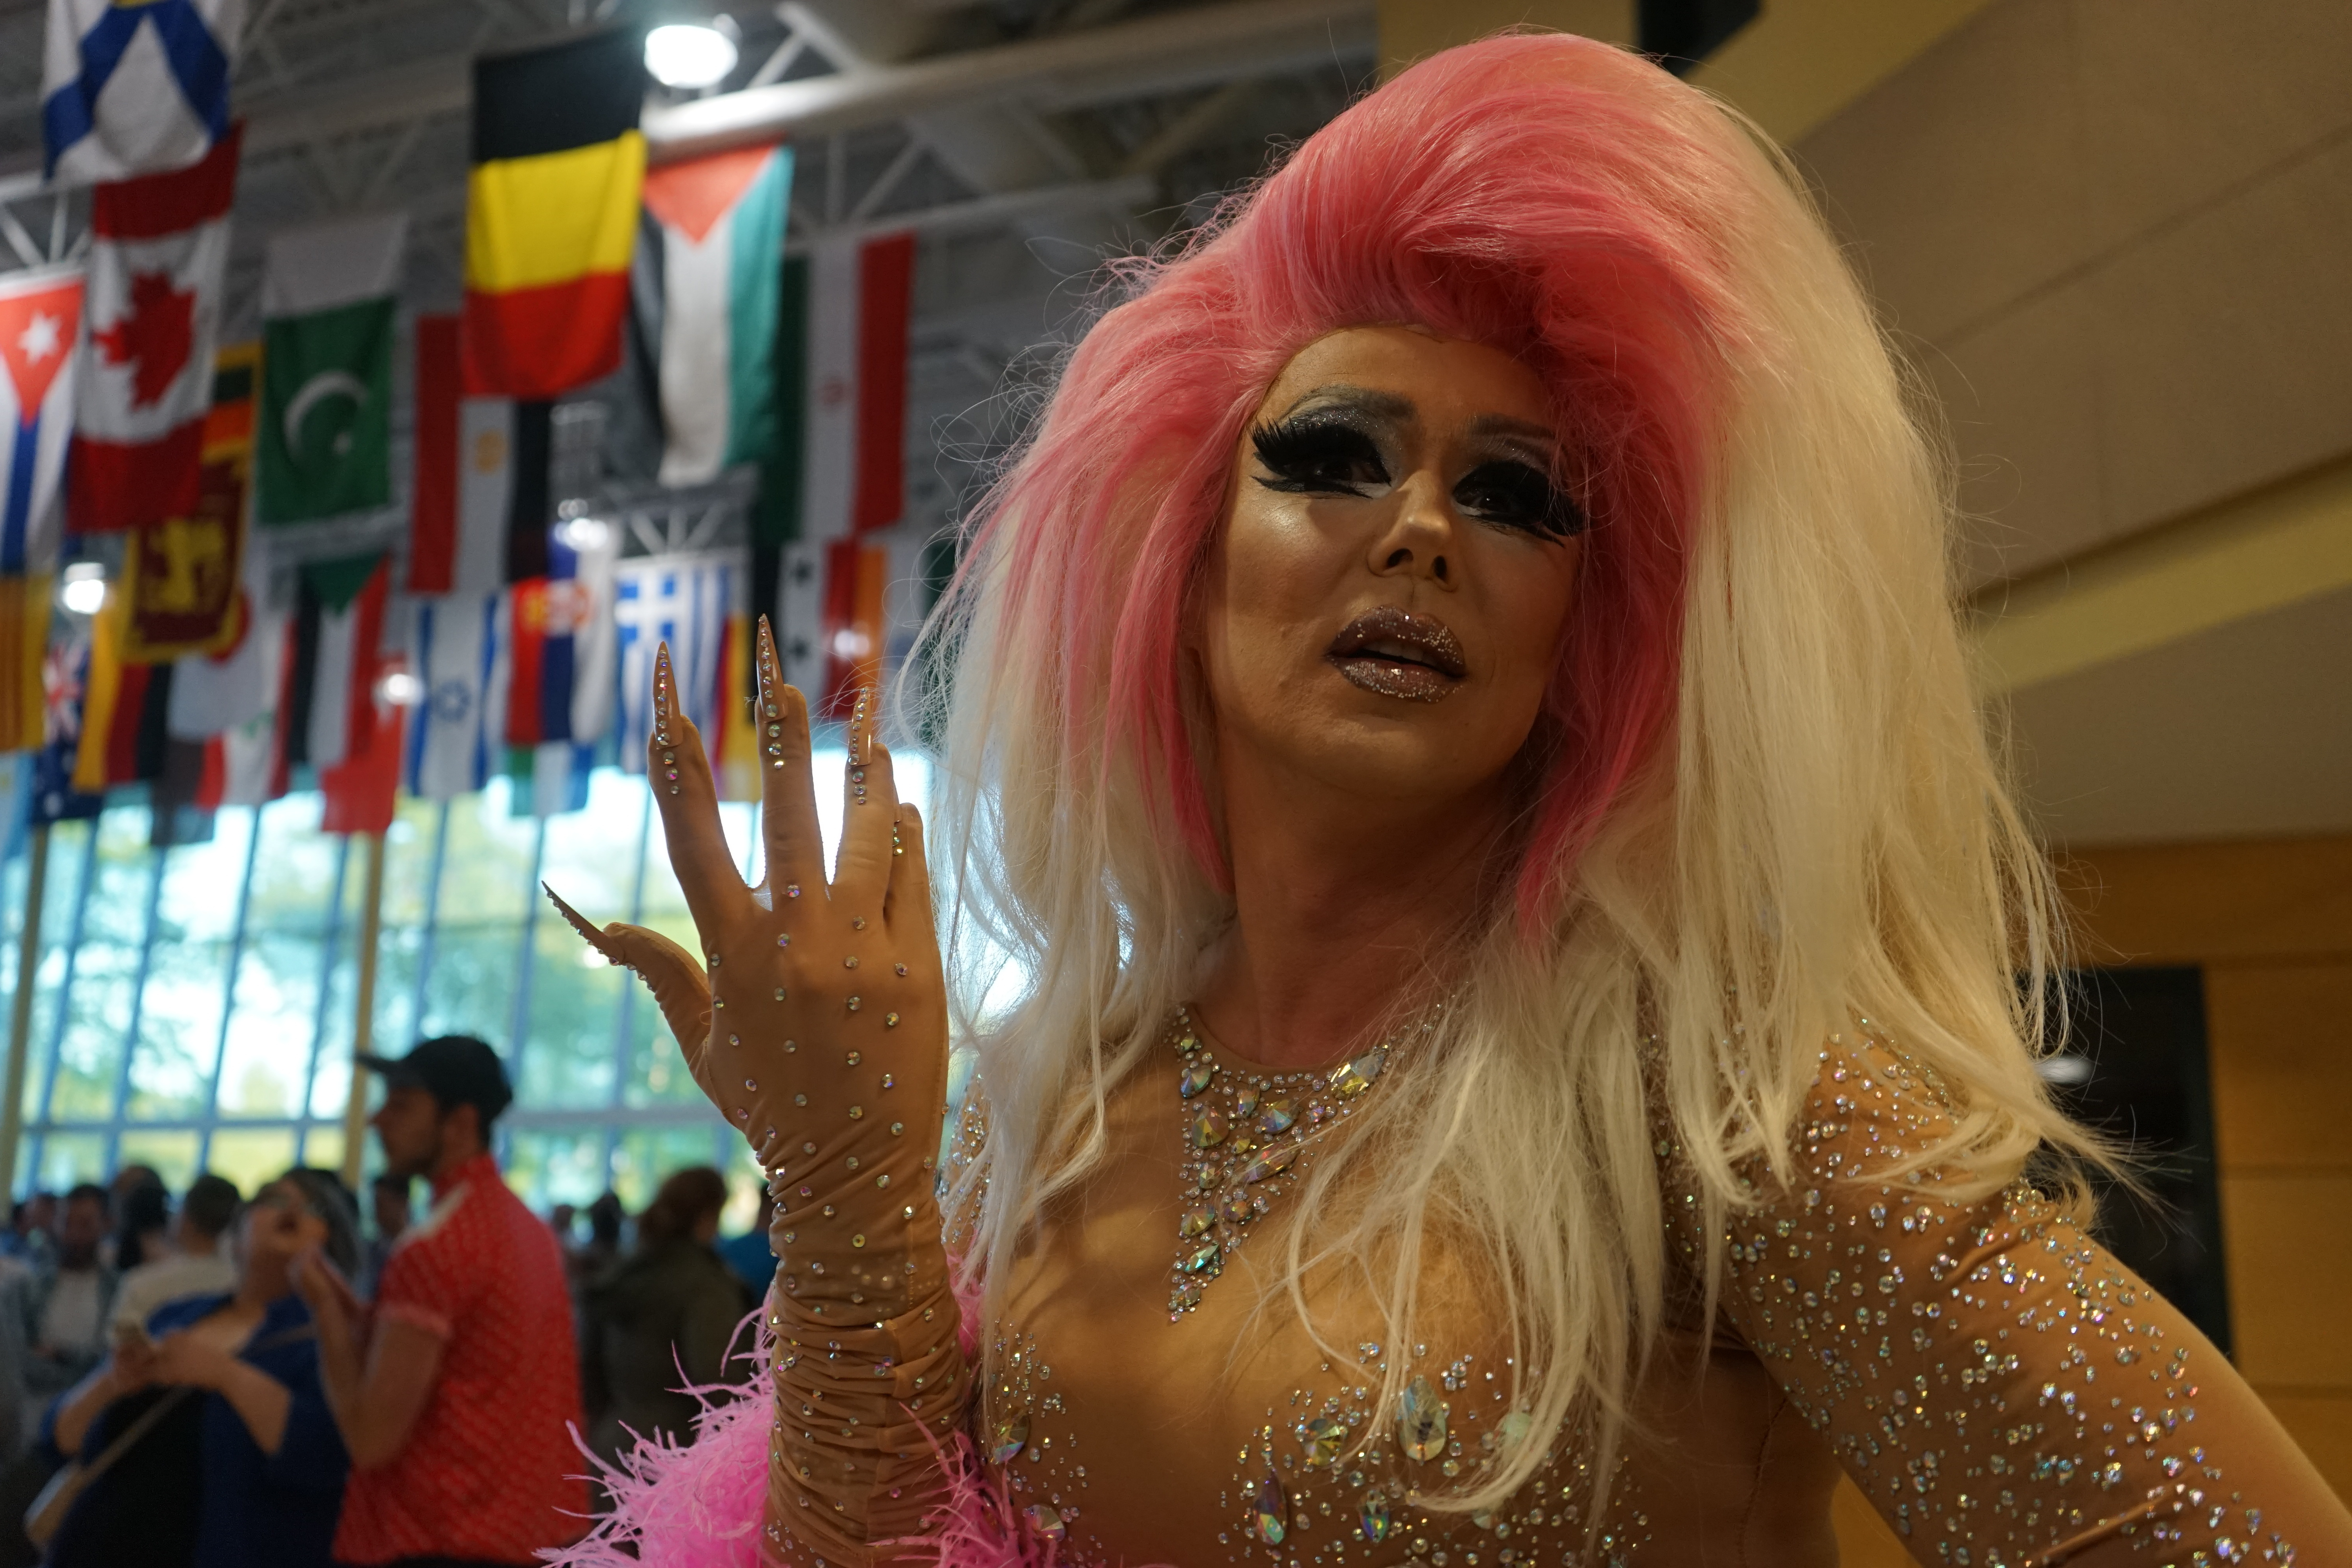 Vlad Snytkin, aka drag queen Anya Knees, at Citadel High School. (Emma Davie/CBC)